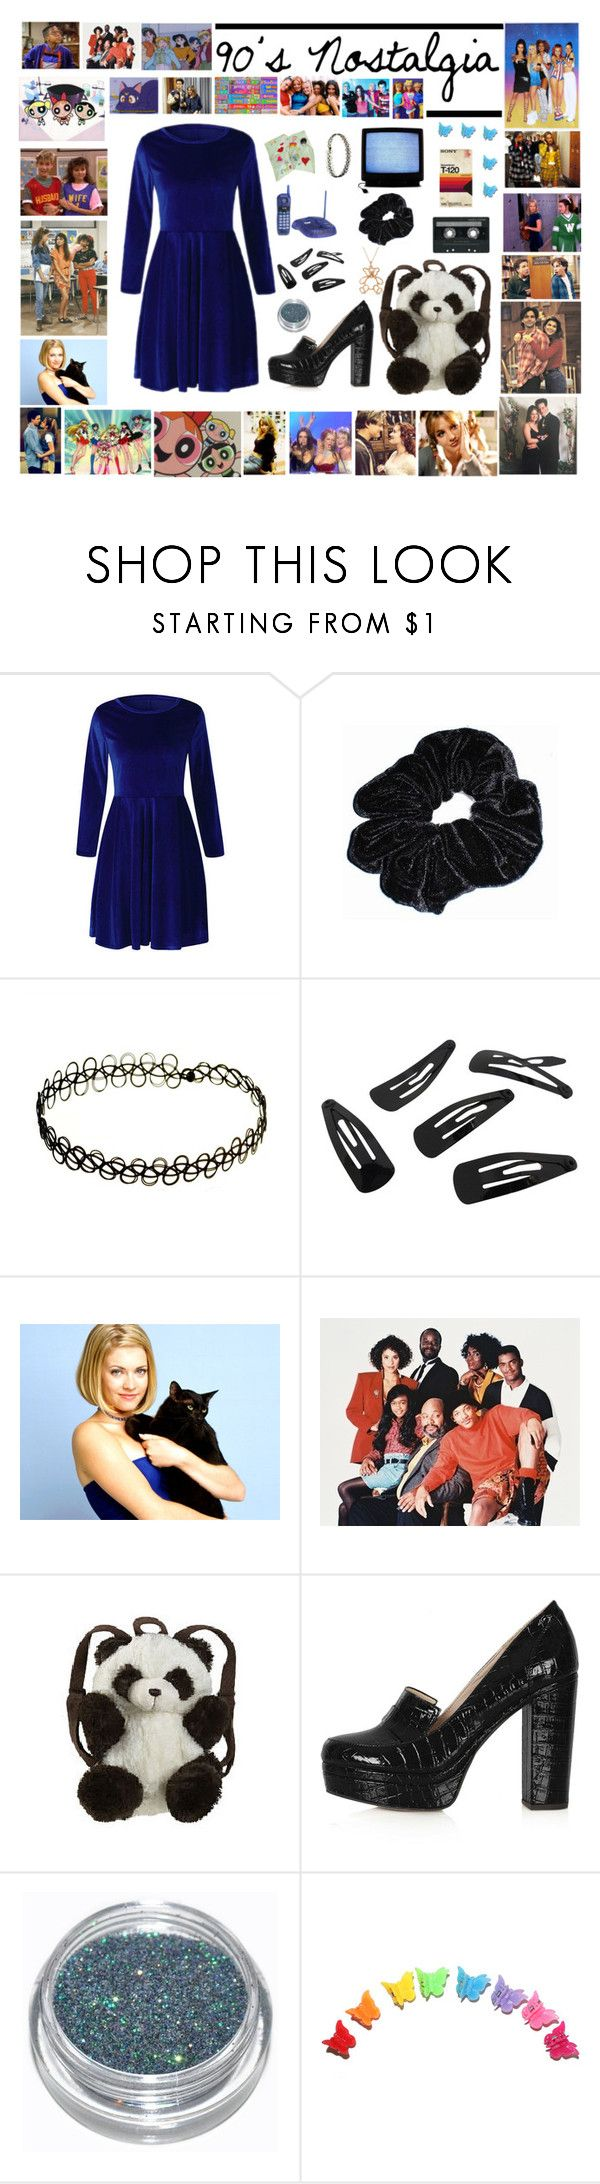 """""""90s Nostalgia"""" by sparkle1277 ❤ liked on Polyvore featuring INDIE HAIR, Ultimate, Topanga, Mariah Carey, CASSETTE, Forum, Panda, Topshop, GAS Jeans and Allurez"""